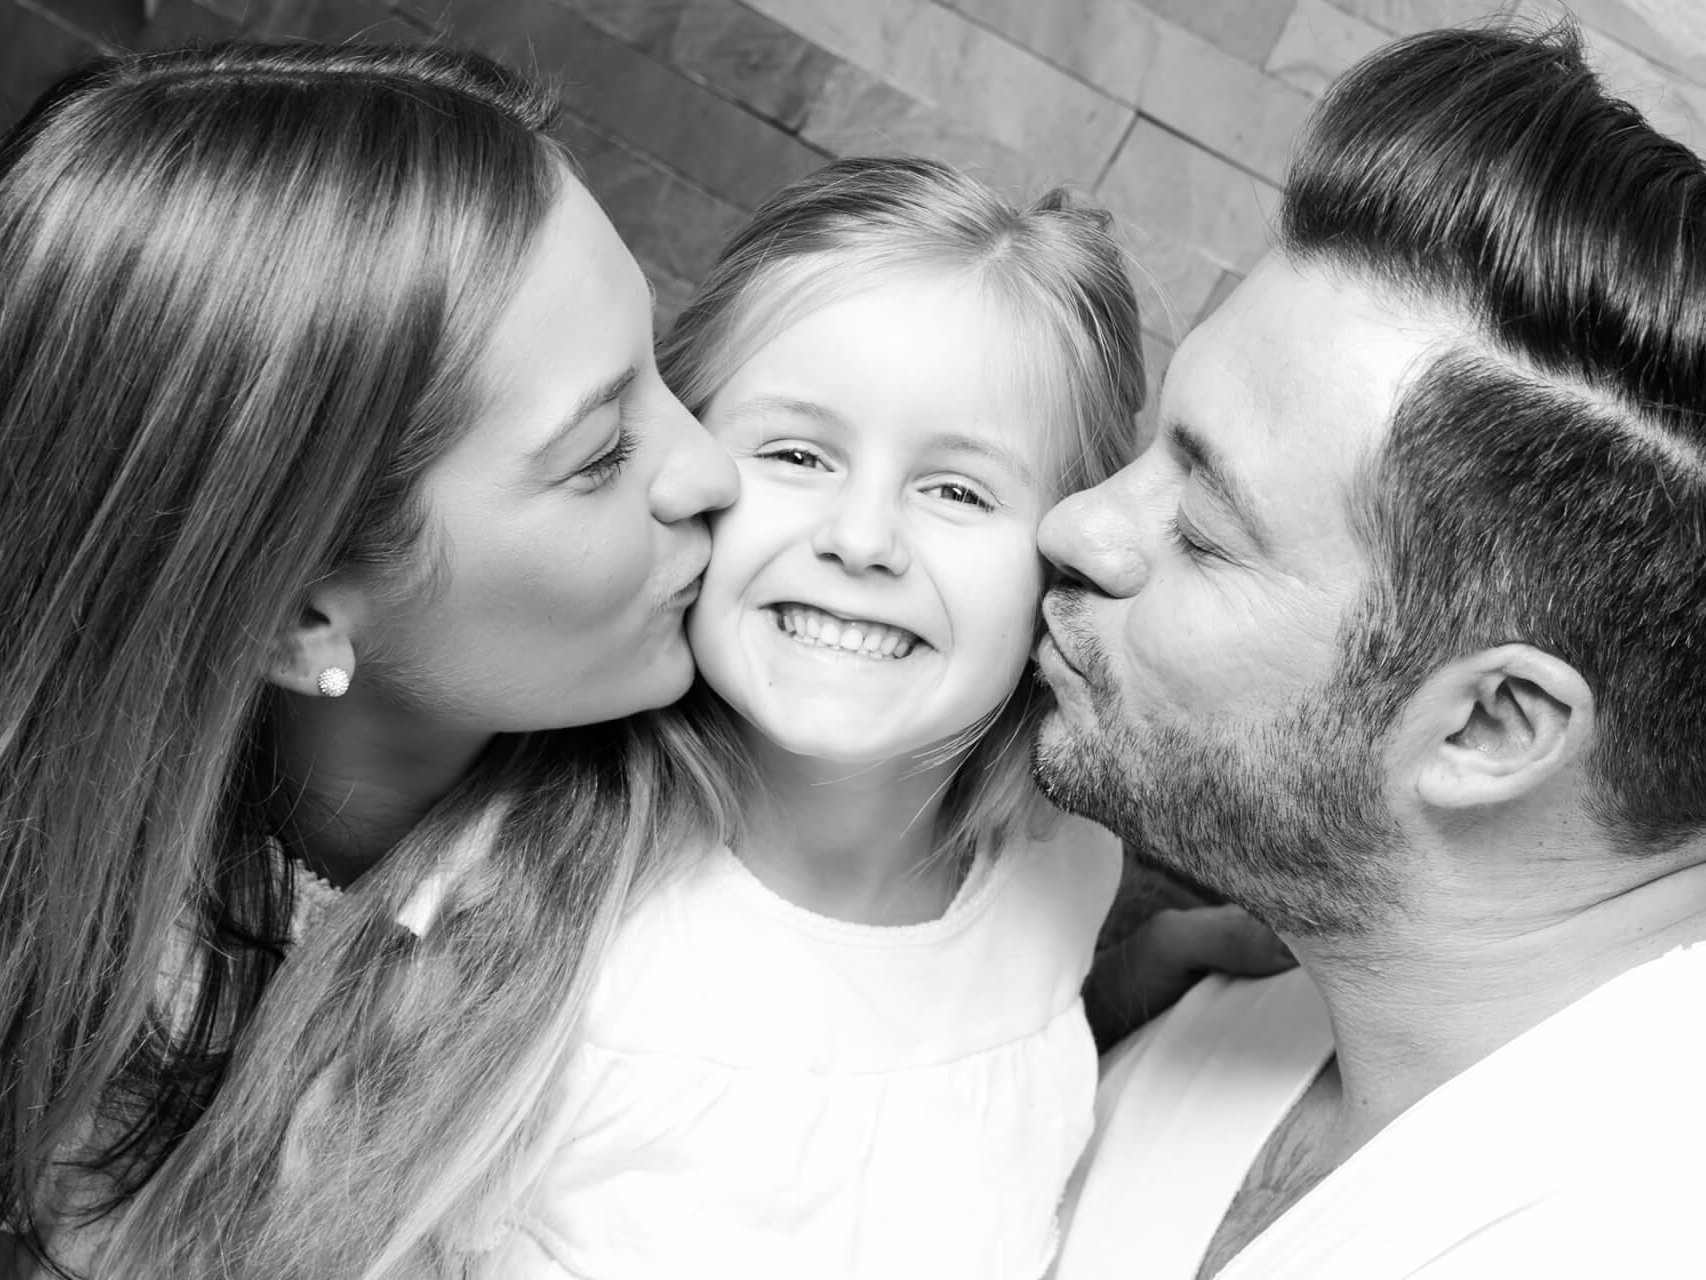 Familien-Fotoshooting mit Baby & Co   PicturePeople: Picture ...